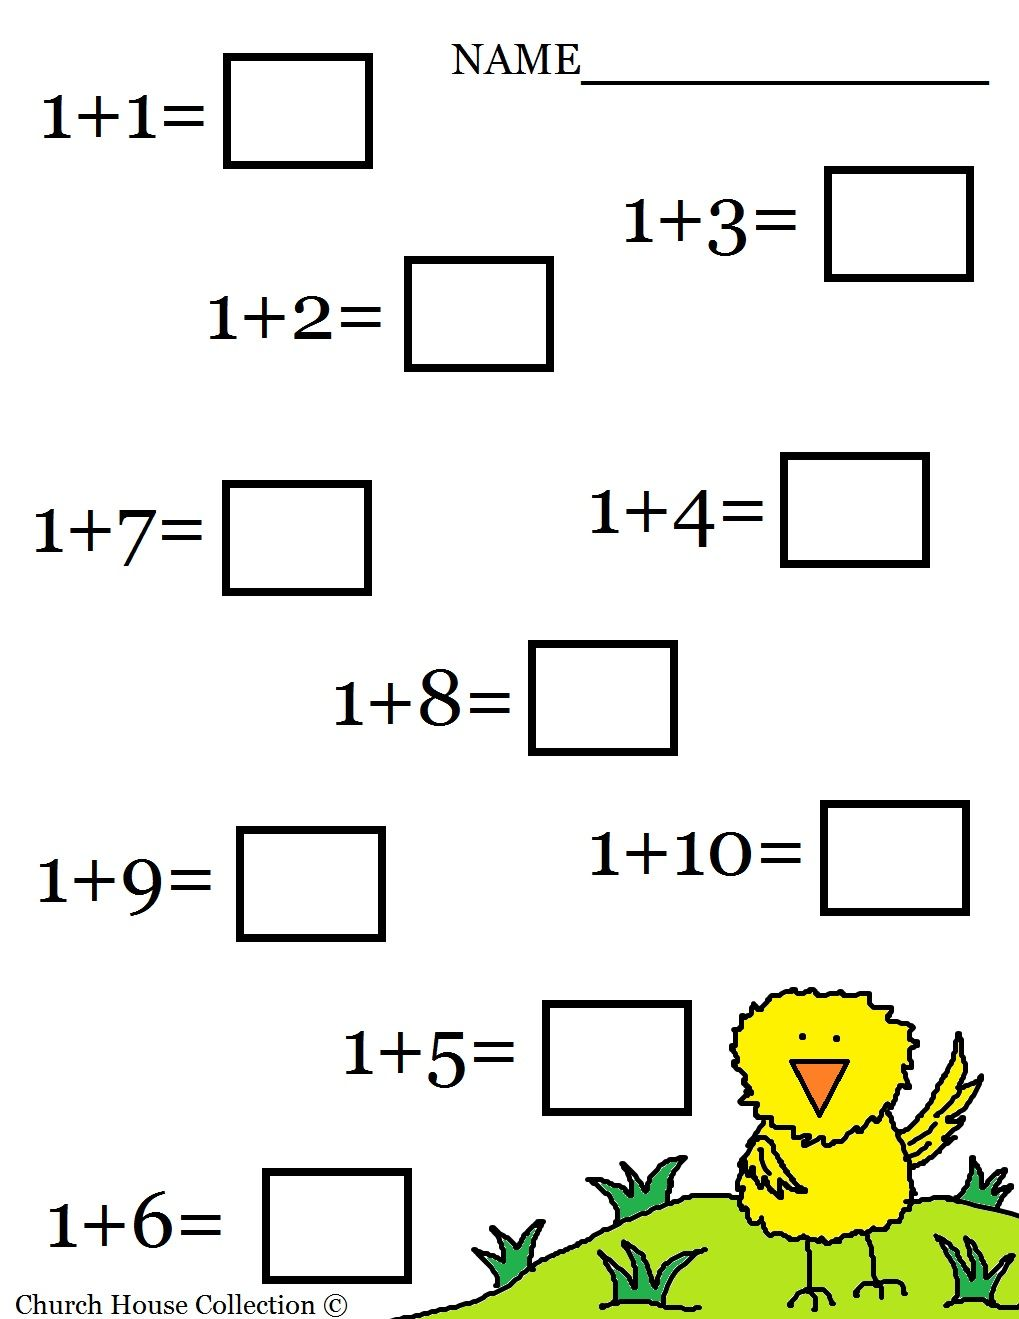 Proatmealus  Pleasing  Images About Worksheets  Math On Pinterest  Math Sheets  With Fair  Images About Worksheets  Math On Pinterest  Math Sheets Math Worksheets For Kindergarten And Simple Addition With Cute Key Stage  Spelling Worksheets Also Free Printable Phonics Worksheets For St Grade In Addition Teaching Shapes Worksheets And Create Vocabulary Worksheet As Well As Vcop Worksheets Additionally Fractions Decimals Worksheets From Pinterestcom With Proatmealus  Fair  Images About Worksheets  Math On Pinterest  Math Sheets  With Cute  Images About Worksheets  Math On Pinterest  Math Sheets Math Worksheets For Kindergarten And Simple Addition And Pleasing Key Stage  Spelling Worksheets Also Free Printable Phonics Worksheets For St Grade In Addition Teaching Shapes Worksheets From Pinterestcom